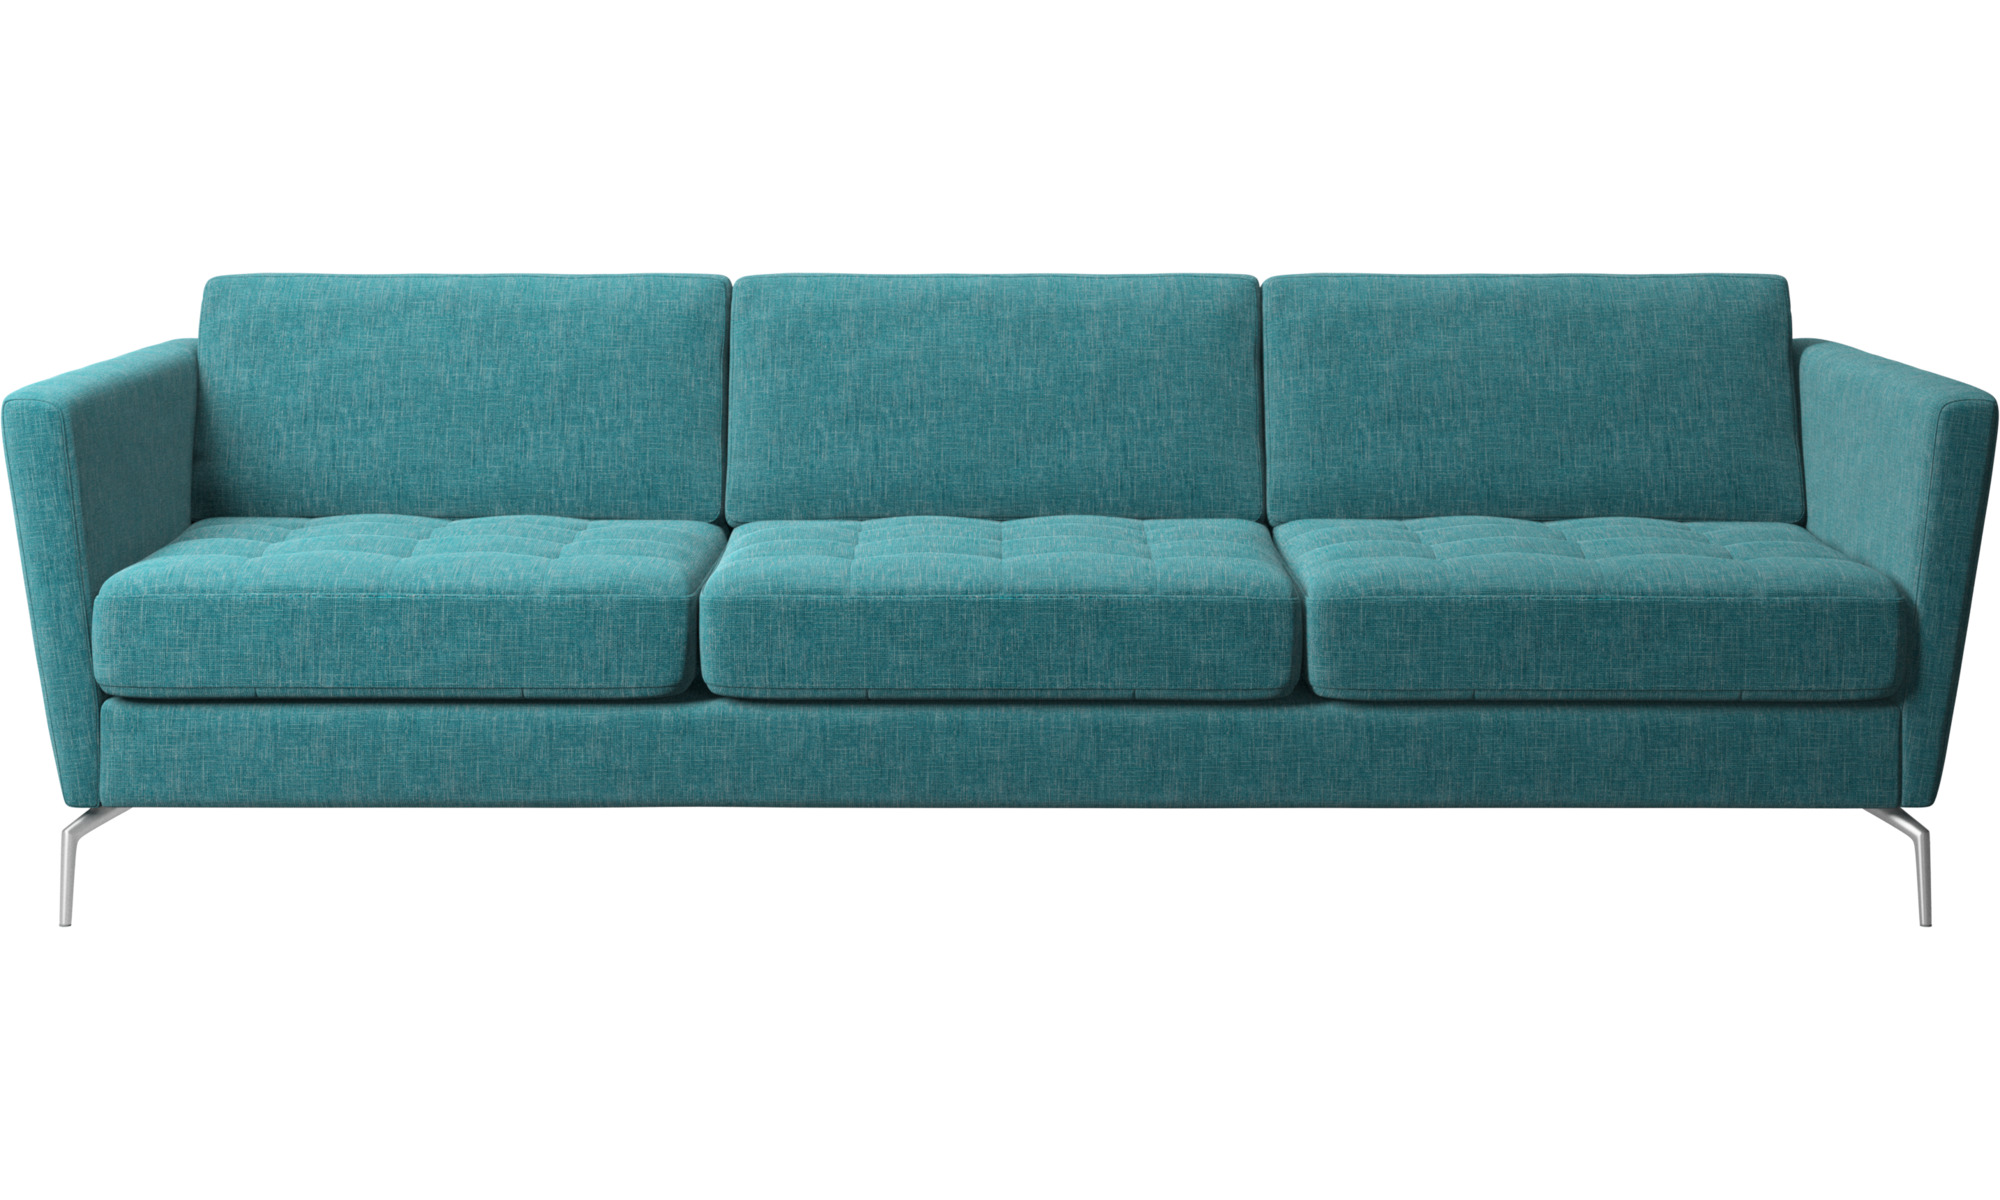 3 seater sofas osaka sofa tufted seat boconcept for 3 on a couch